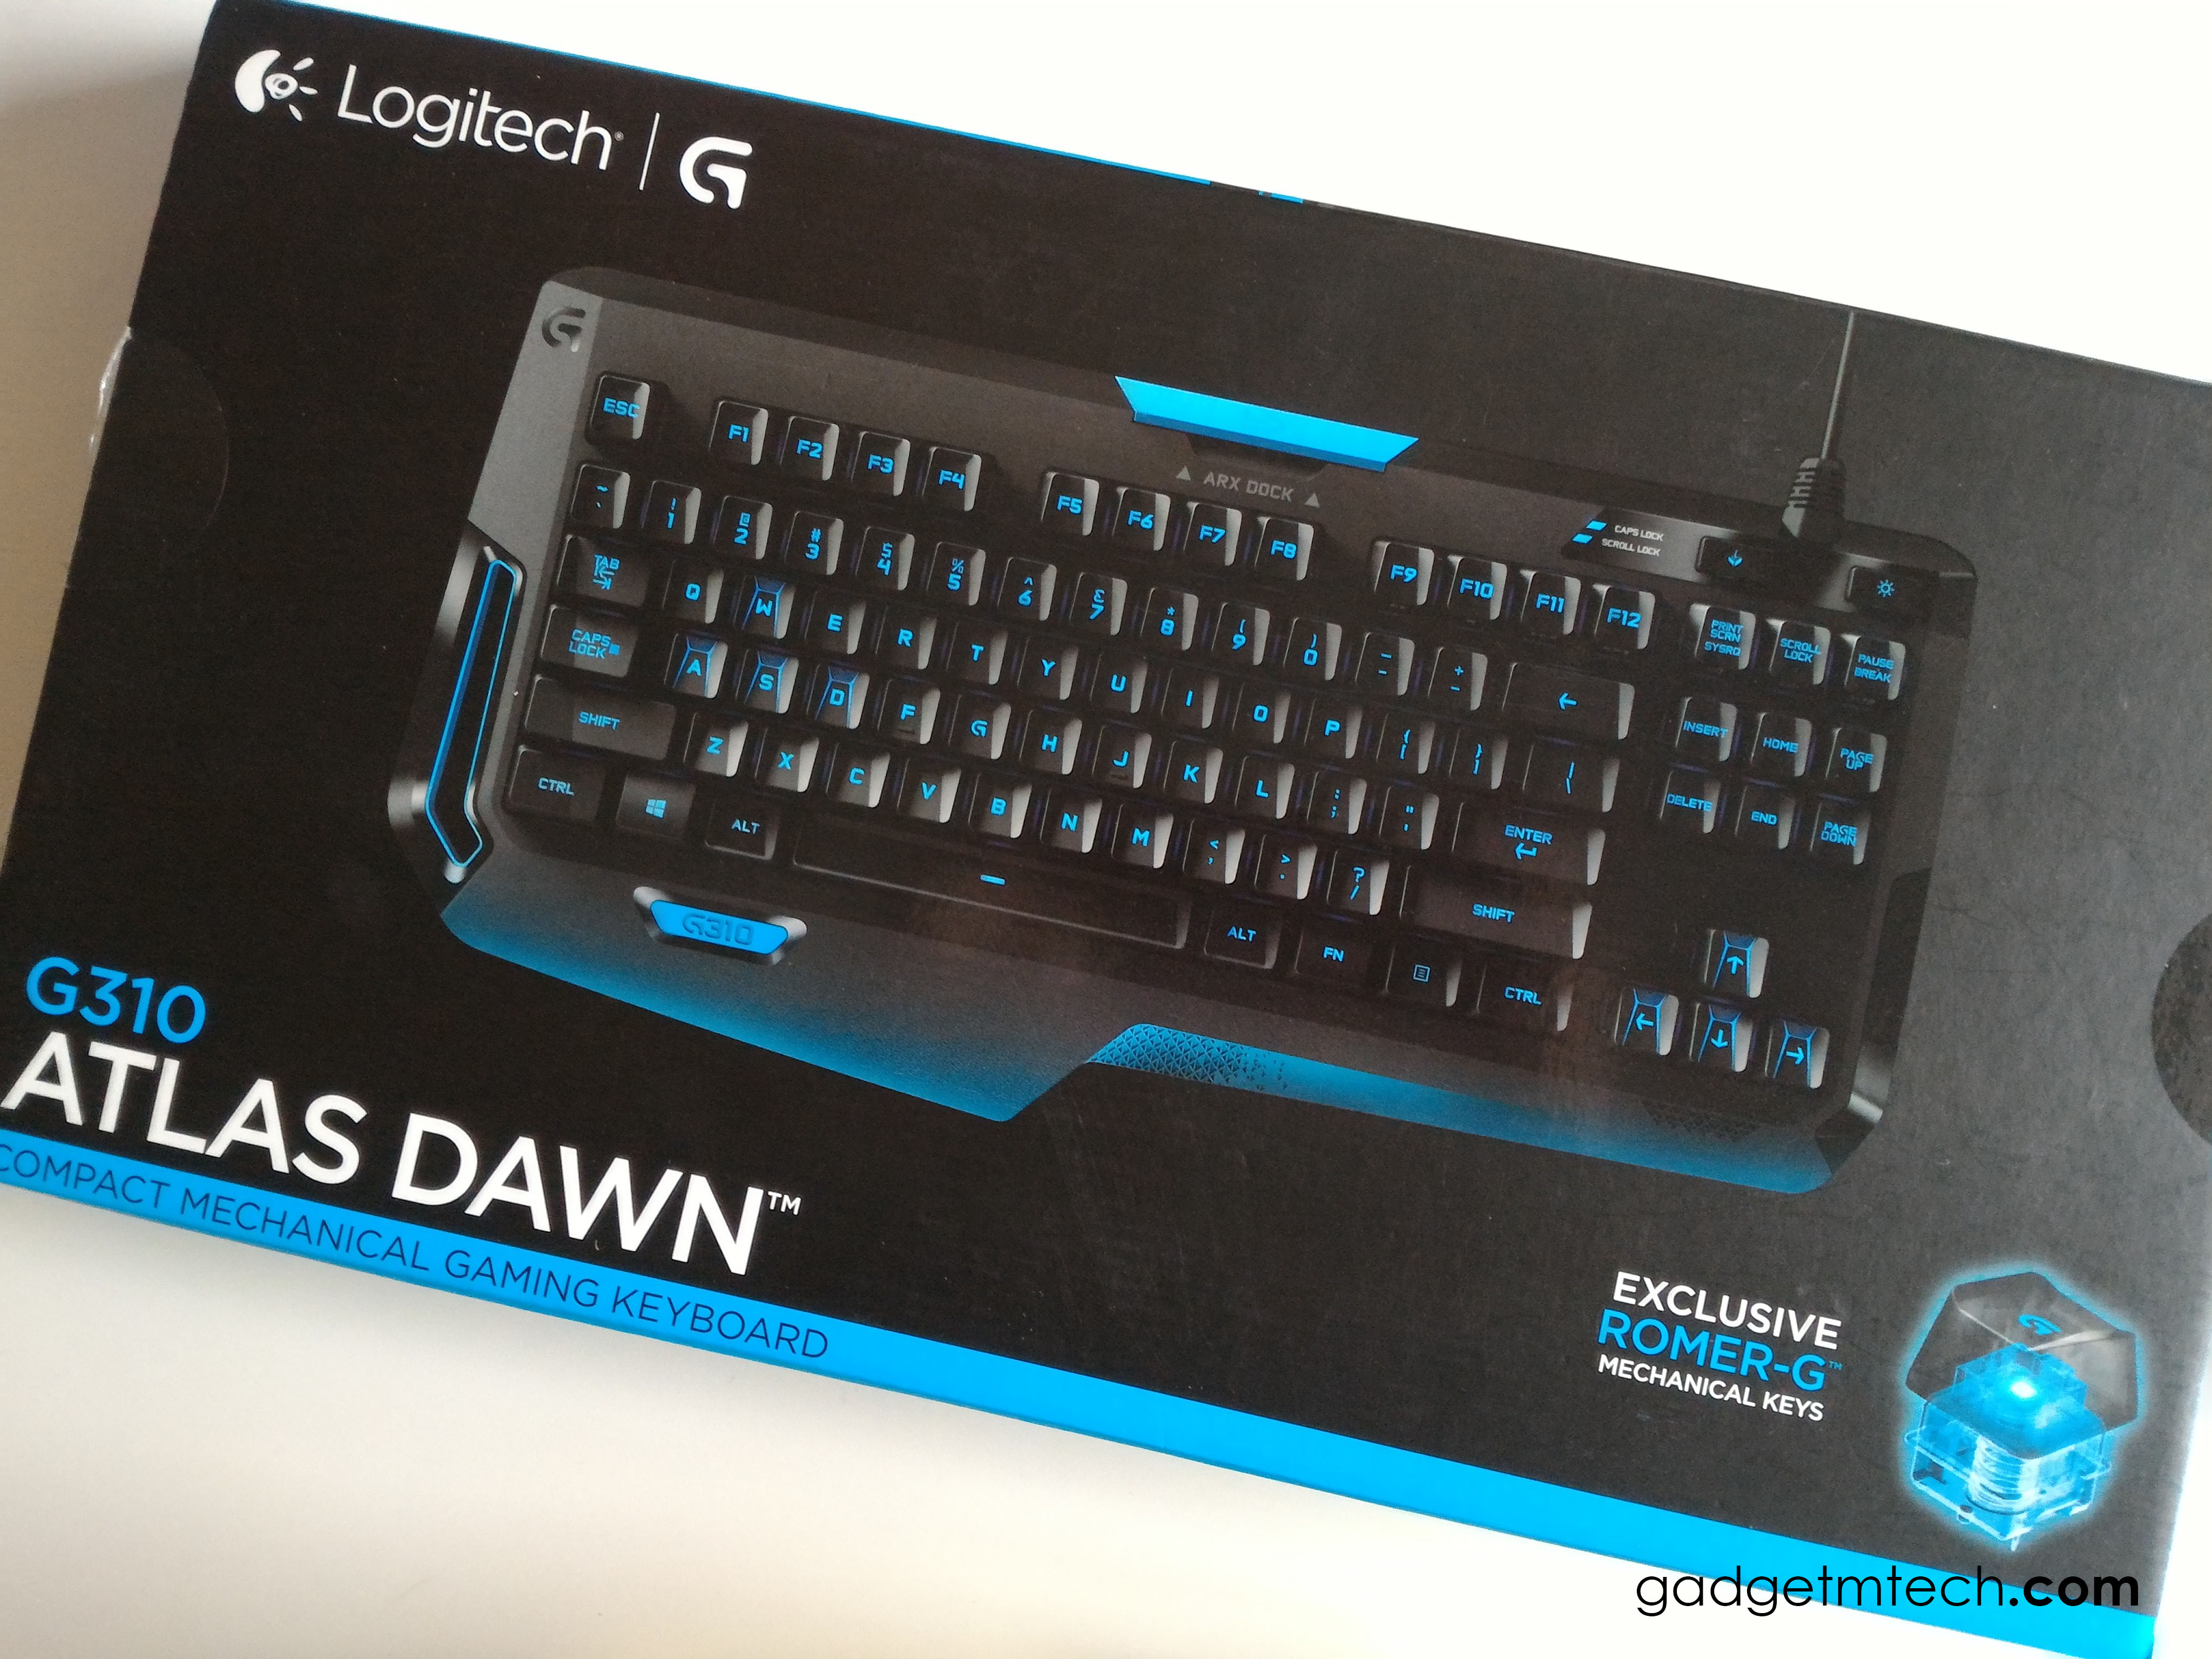 Logitech G310 Atlas Dawn Review_1